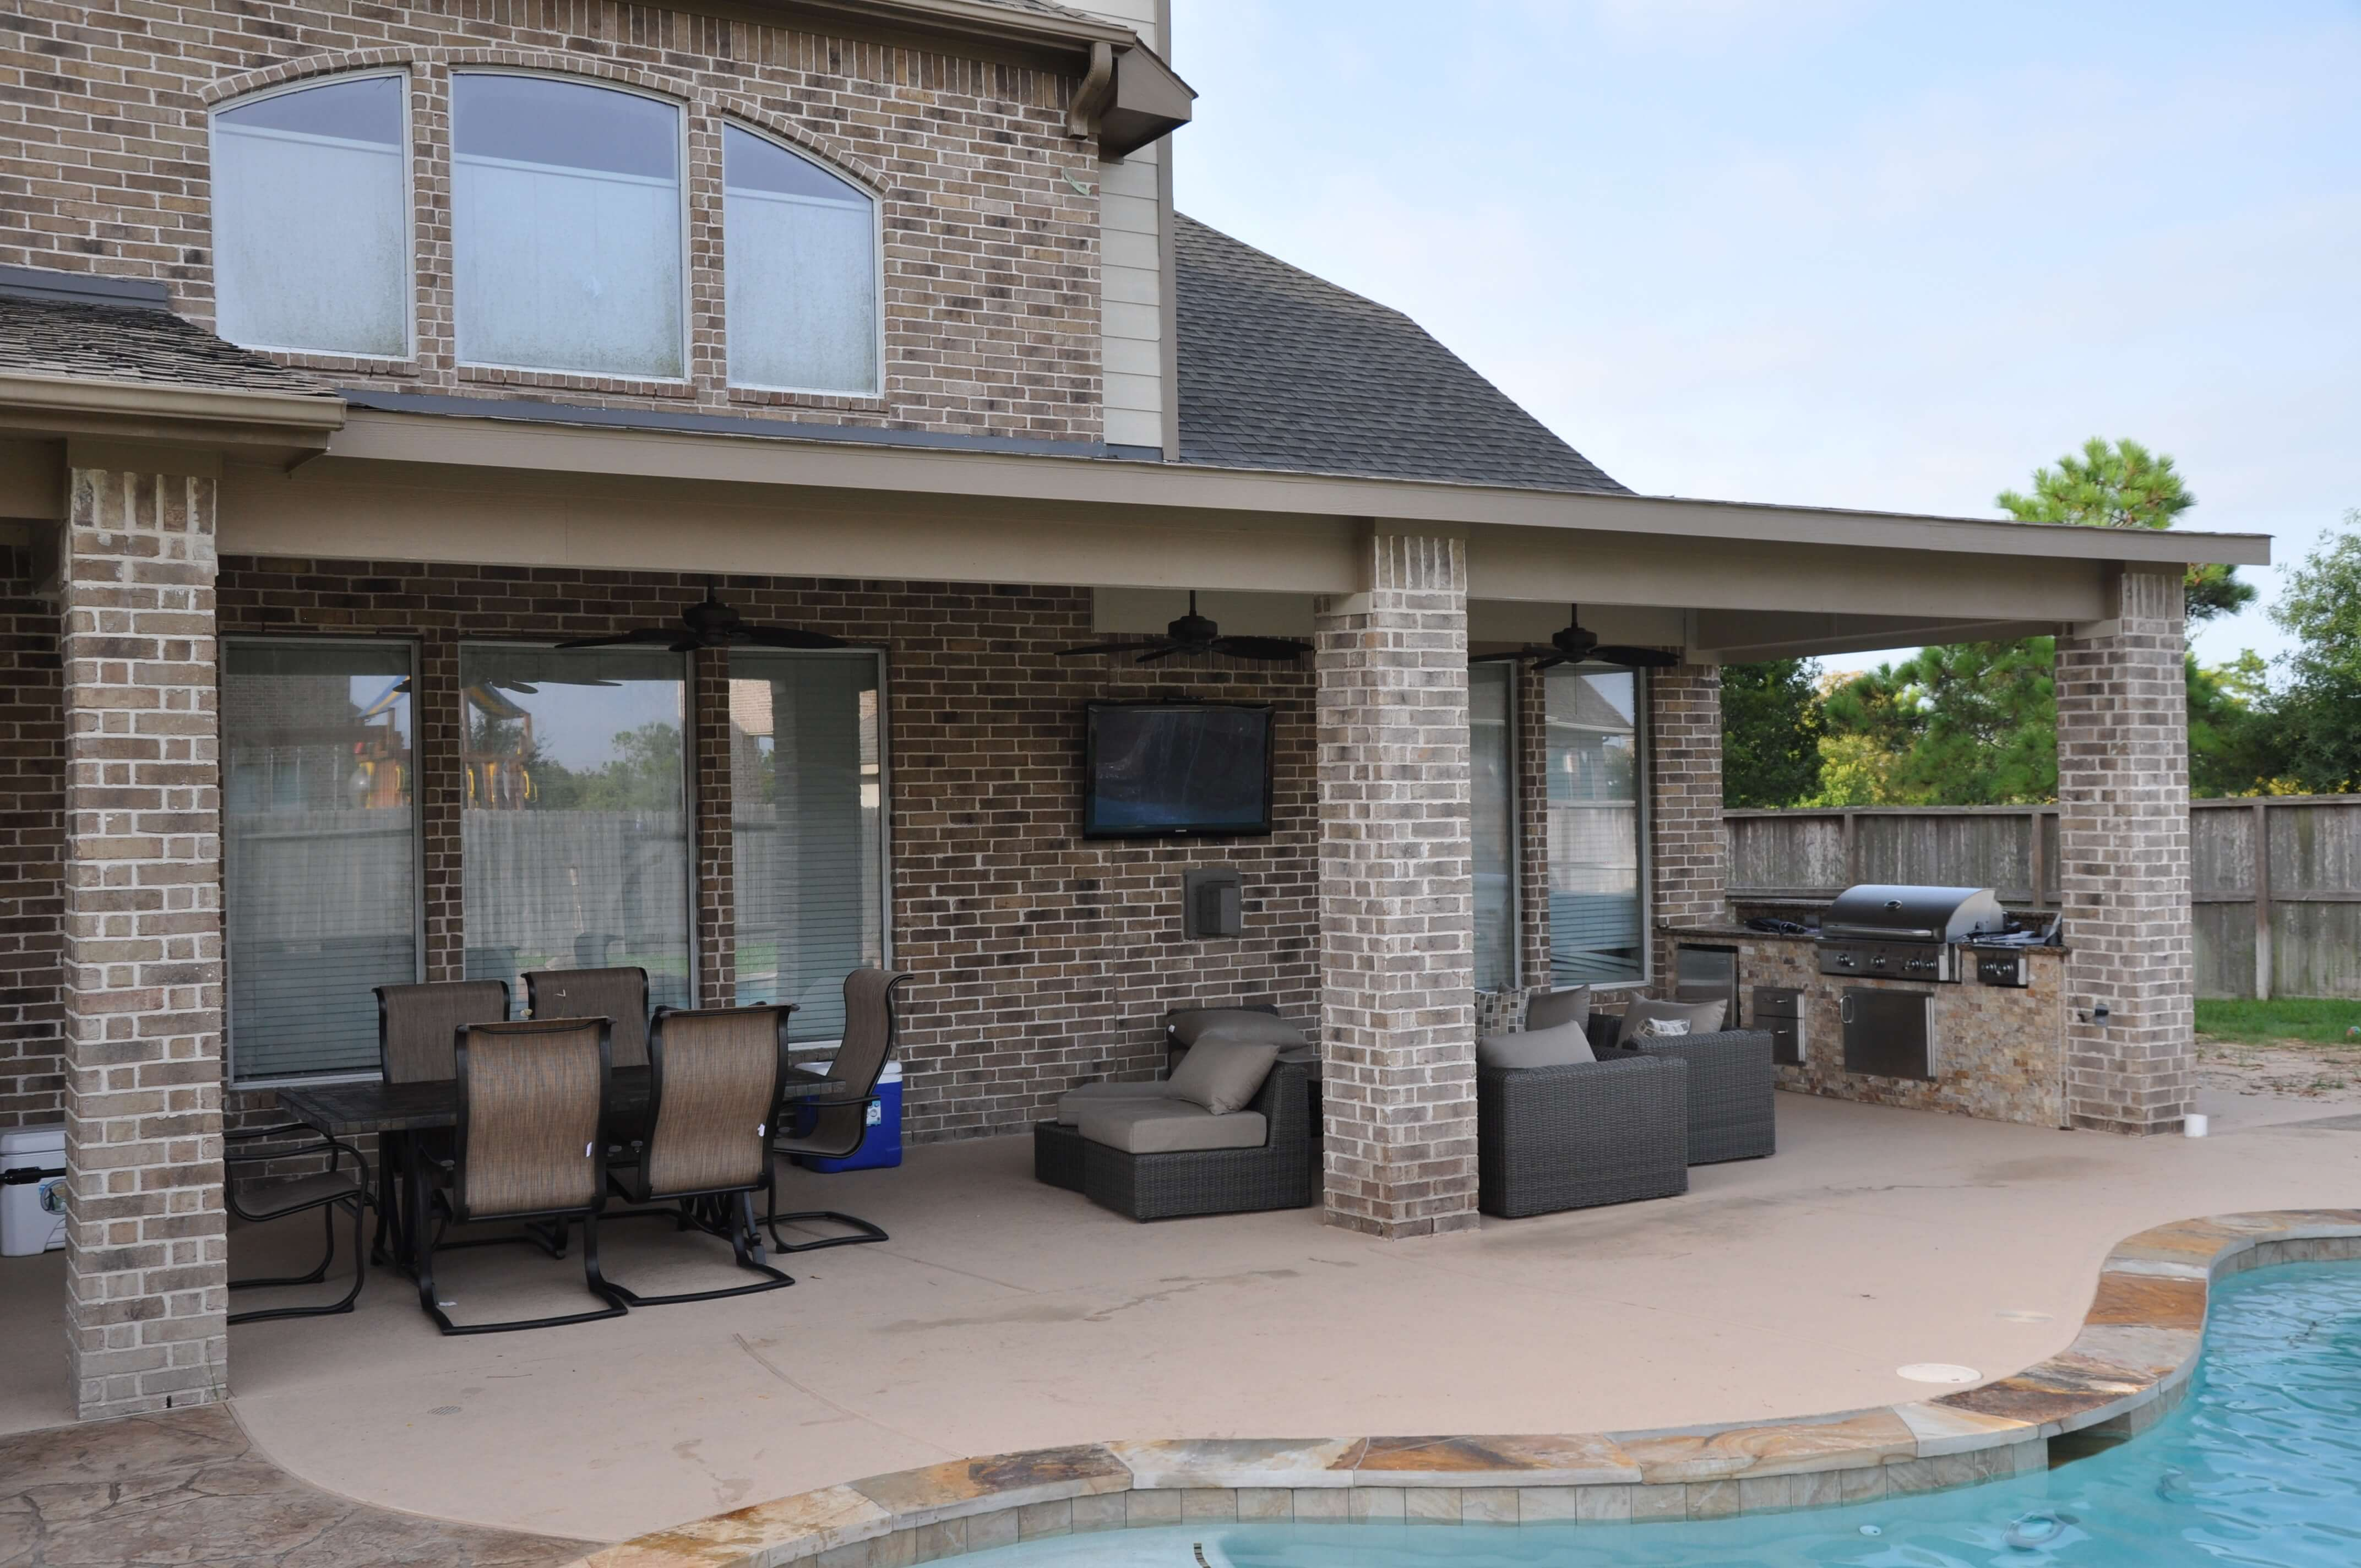 Pearland Outdoor Living Photos | League City Pool Builder on Outdoor Kitchen With Covered Patio id=63513